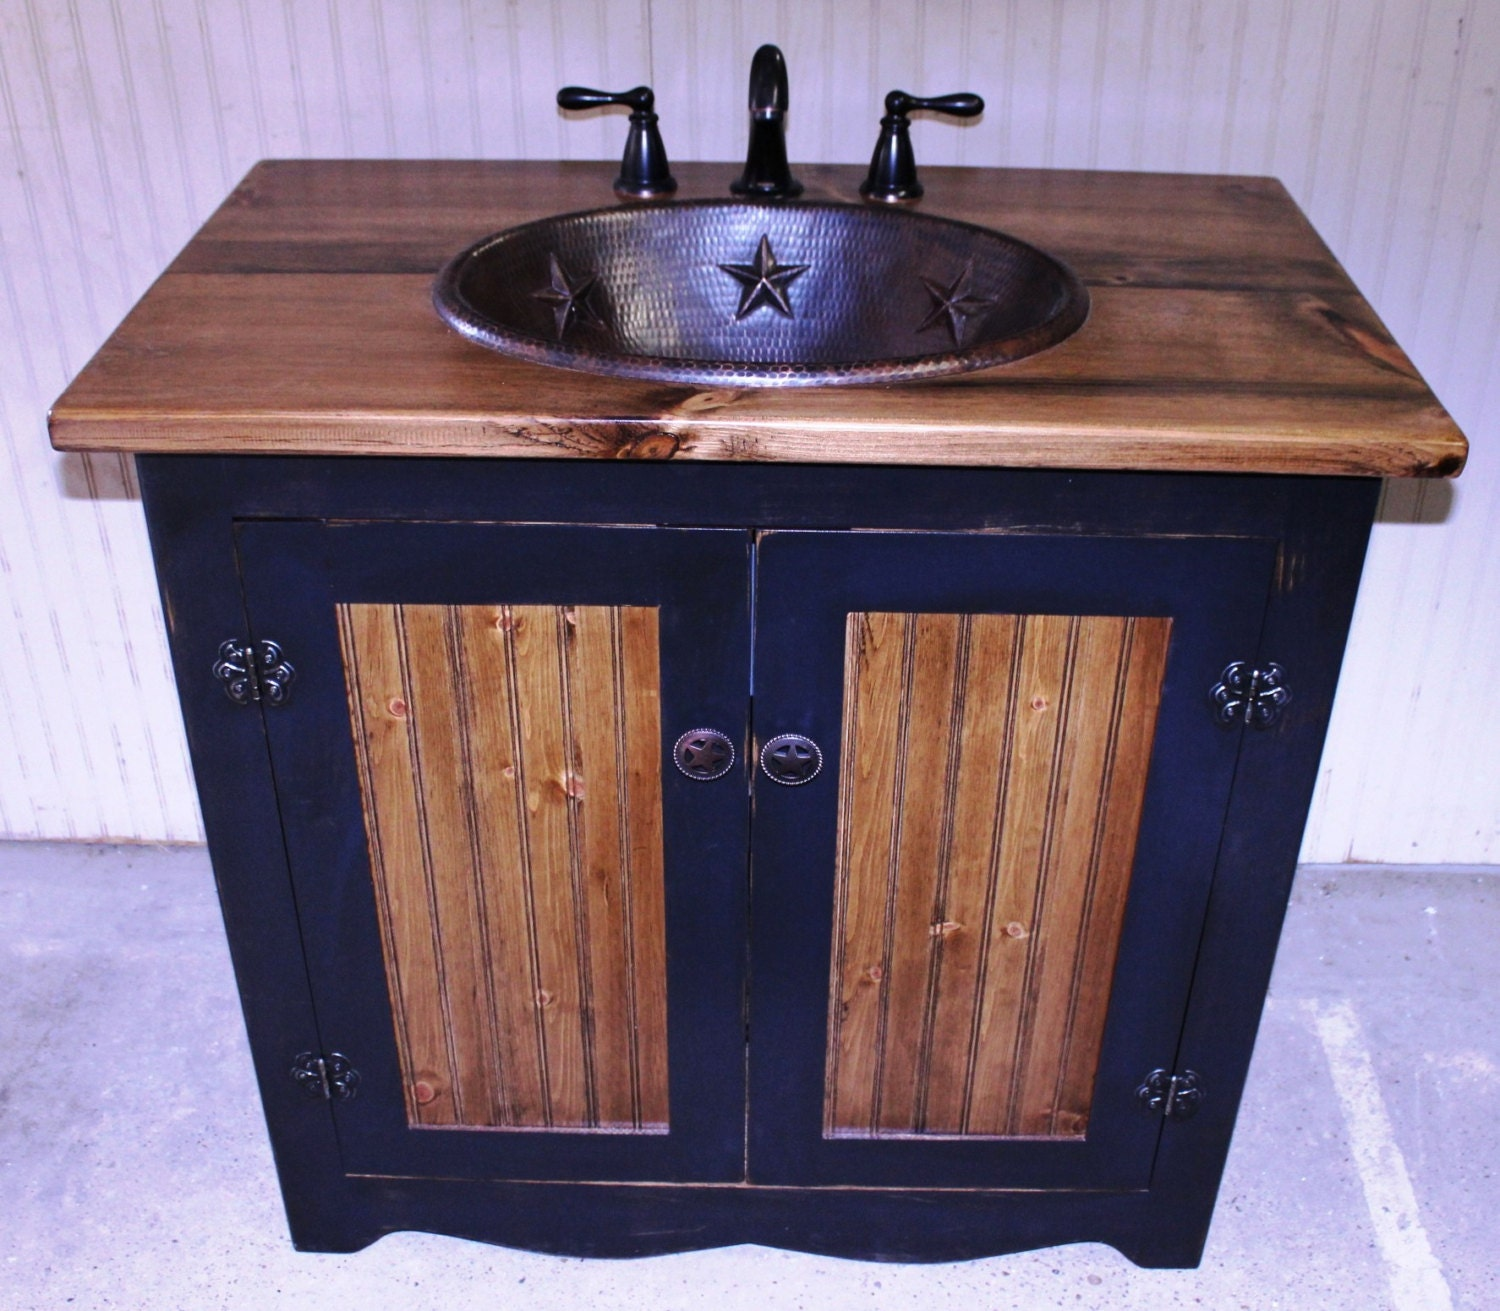 vanity vessel luxury inspiration gallery sinks inspirational home vanities with about bathroom flowy designing interior rustic remodel perfect